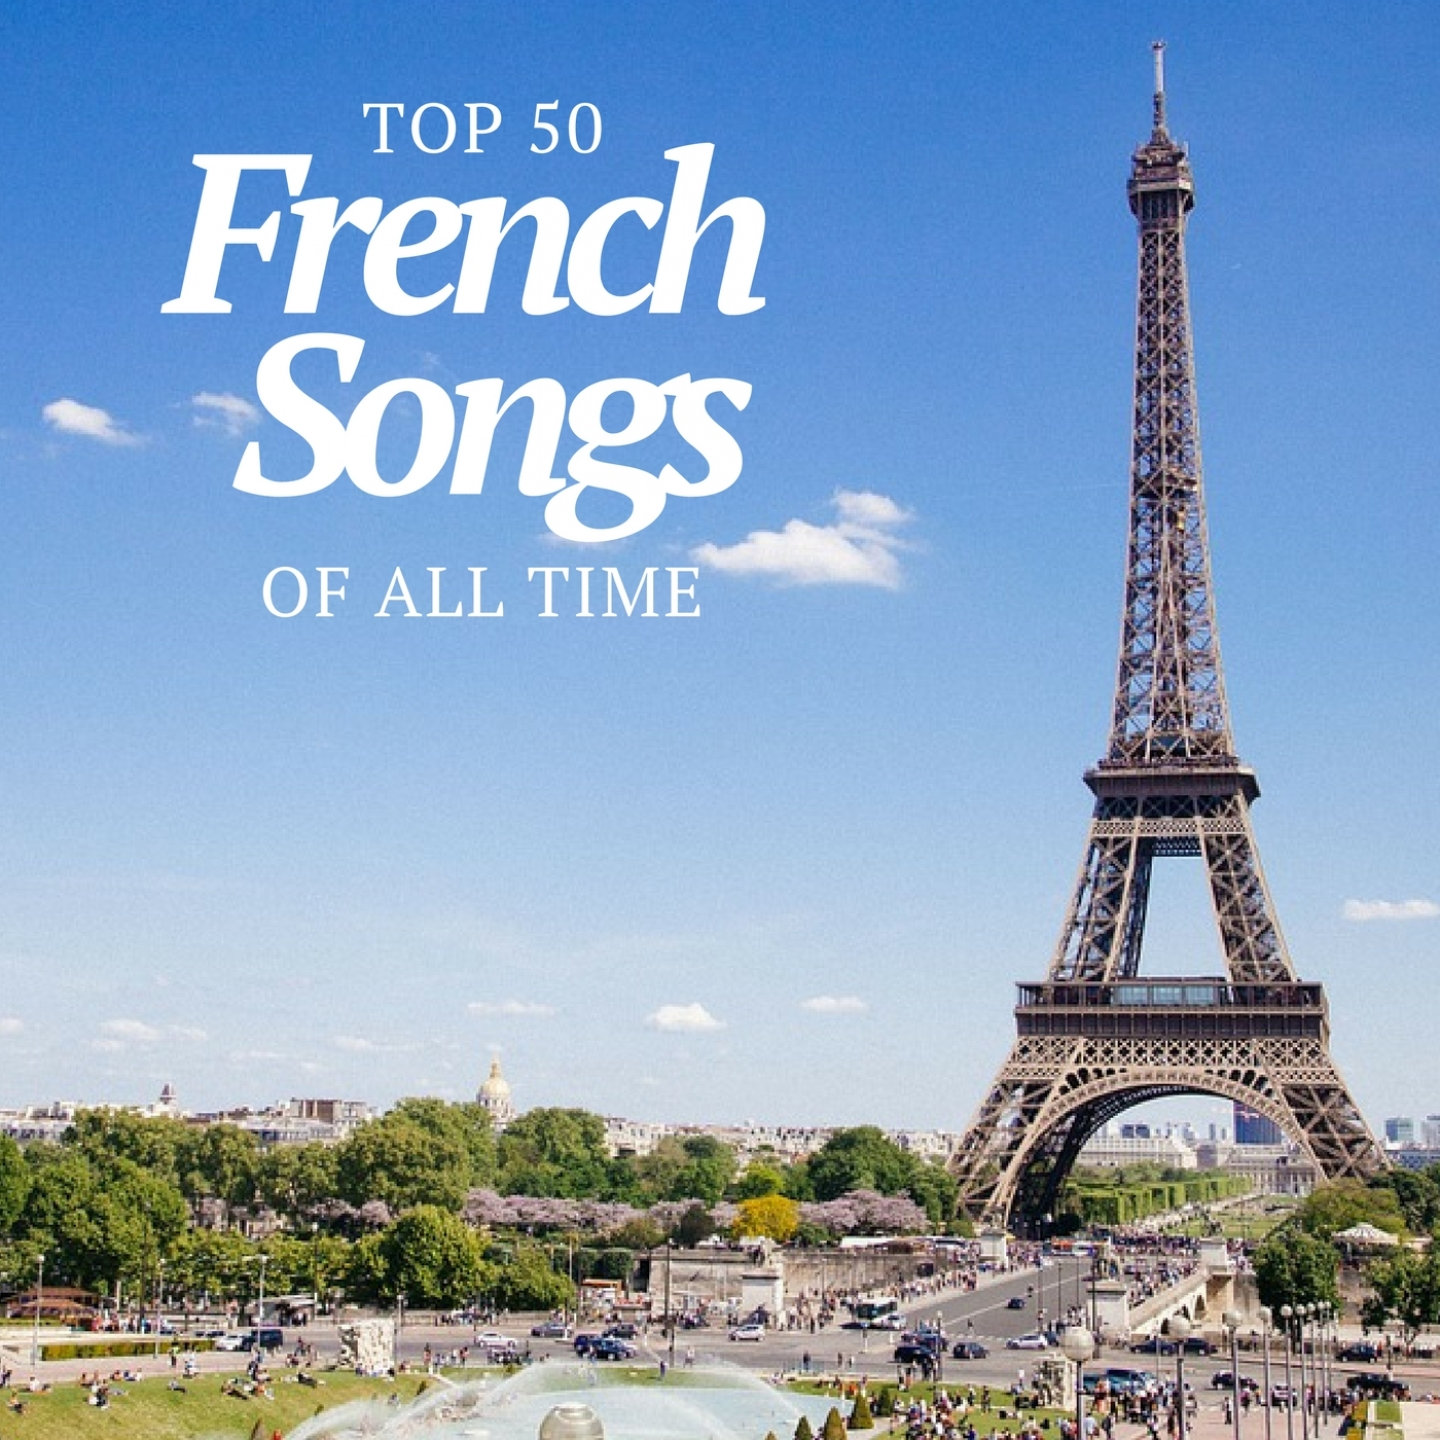 Top 50 French Songs of All Time